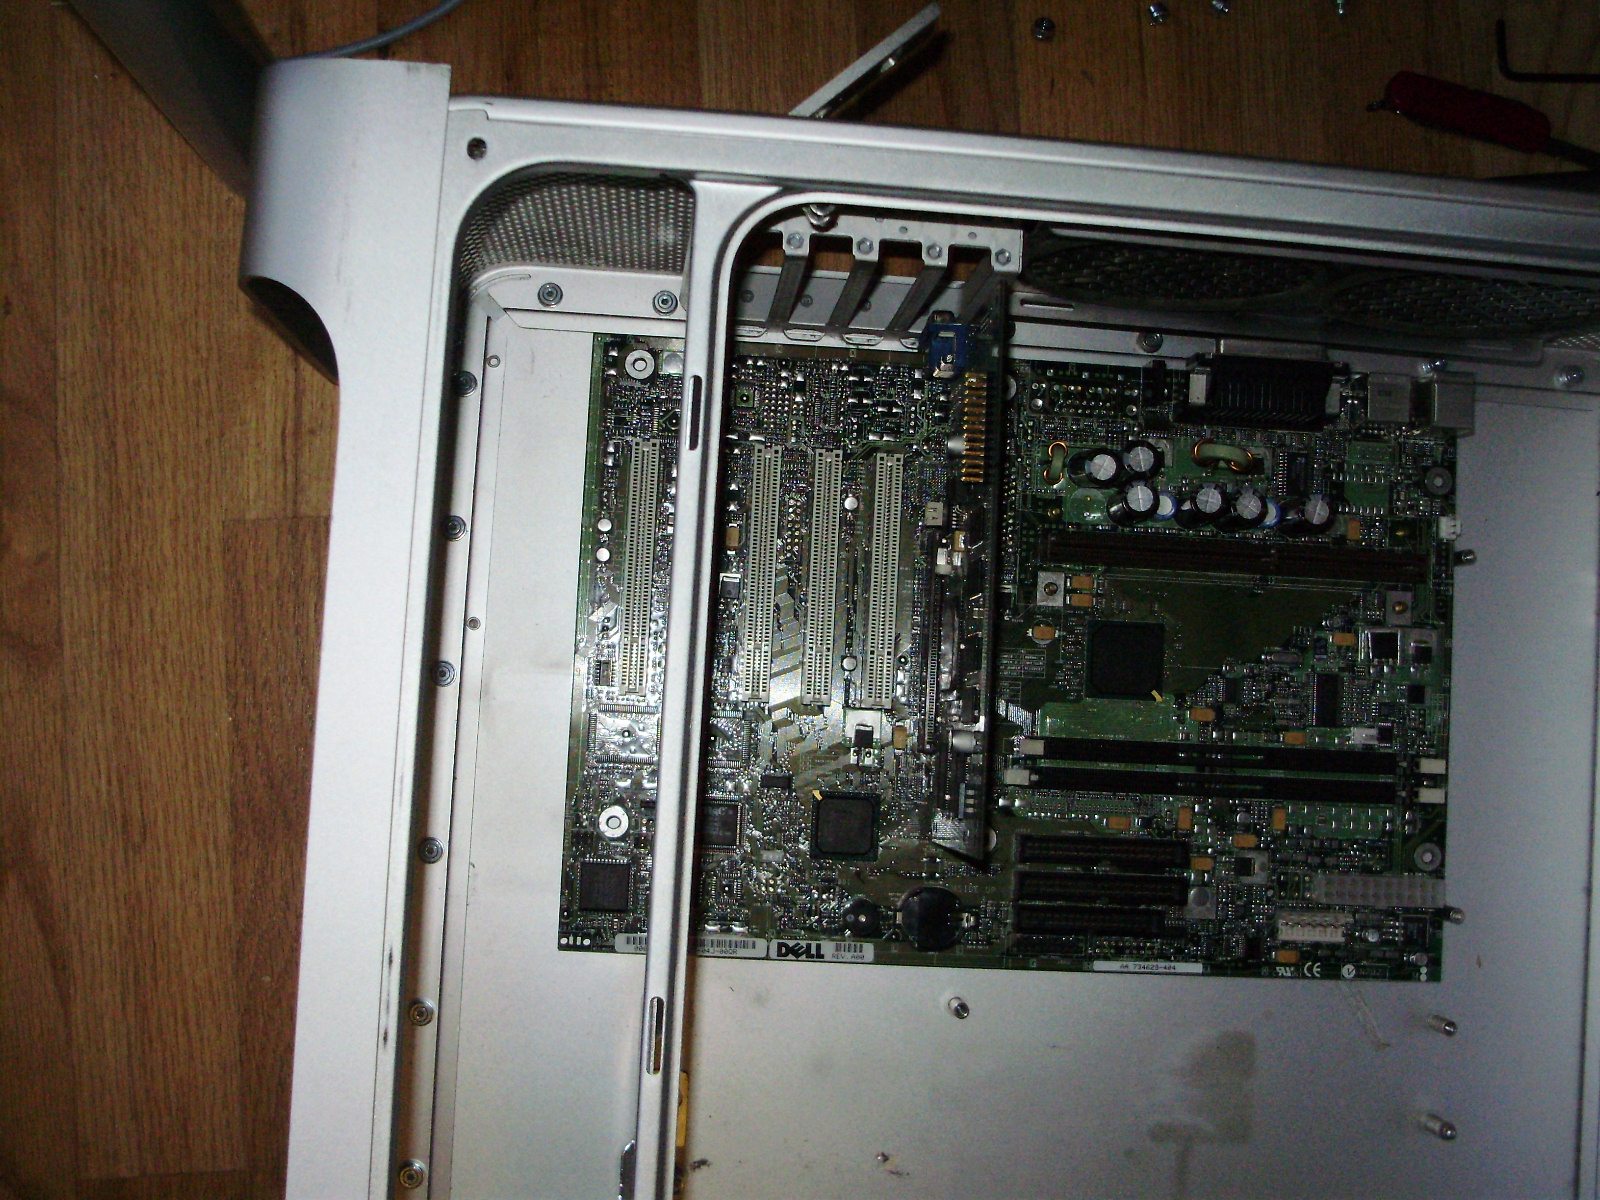 Buildits How To Fit Your Pc In A Power Mac G5 Case Accessories Others Repair Parts X3 Motherboard Circuit Board Since The Now Sat Where Hdd Cage Was Mounted I Had Move Forwards So Could Under It For